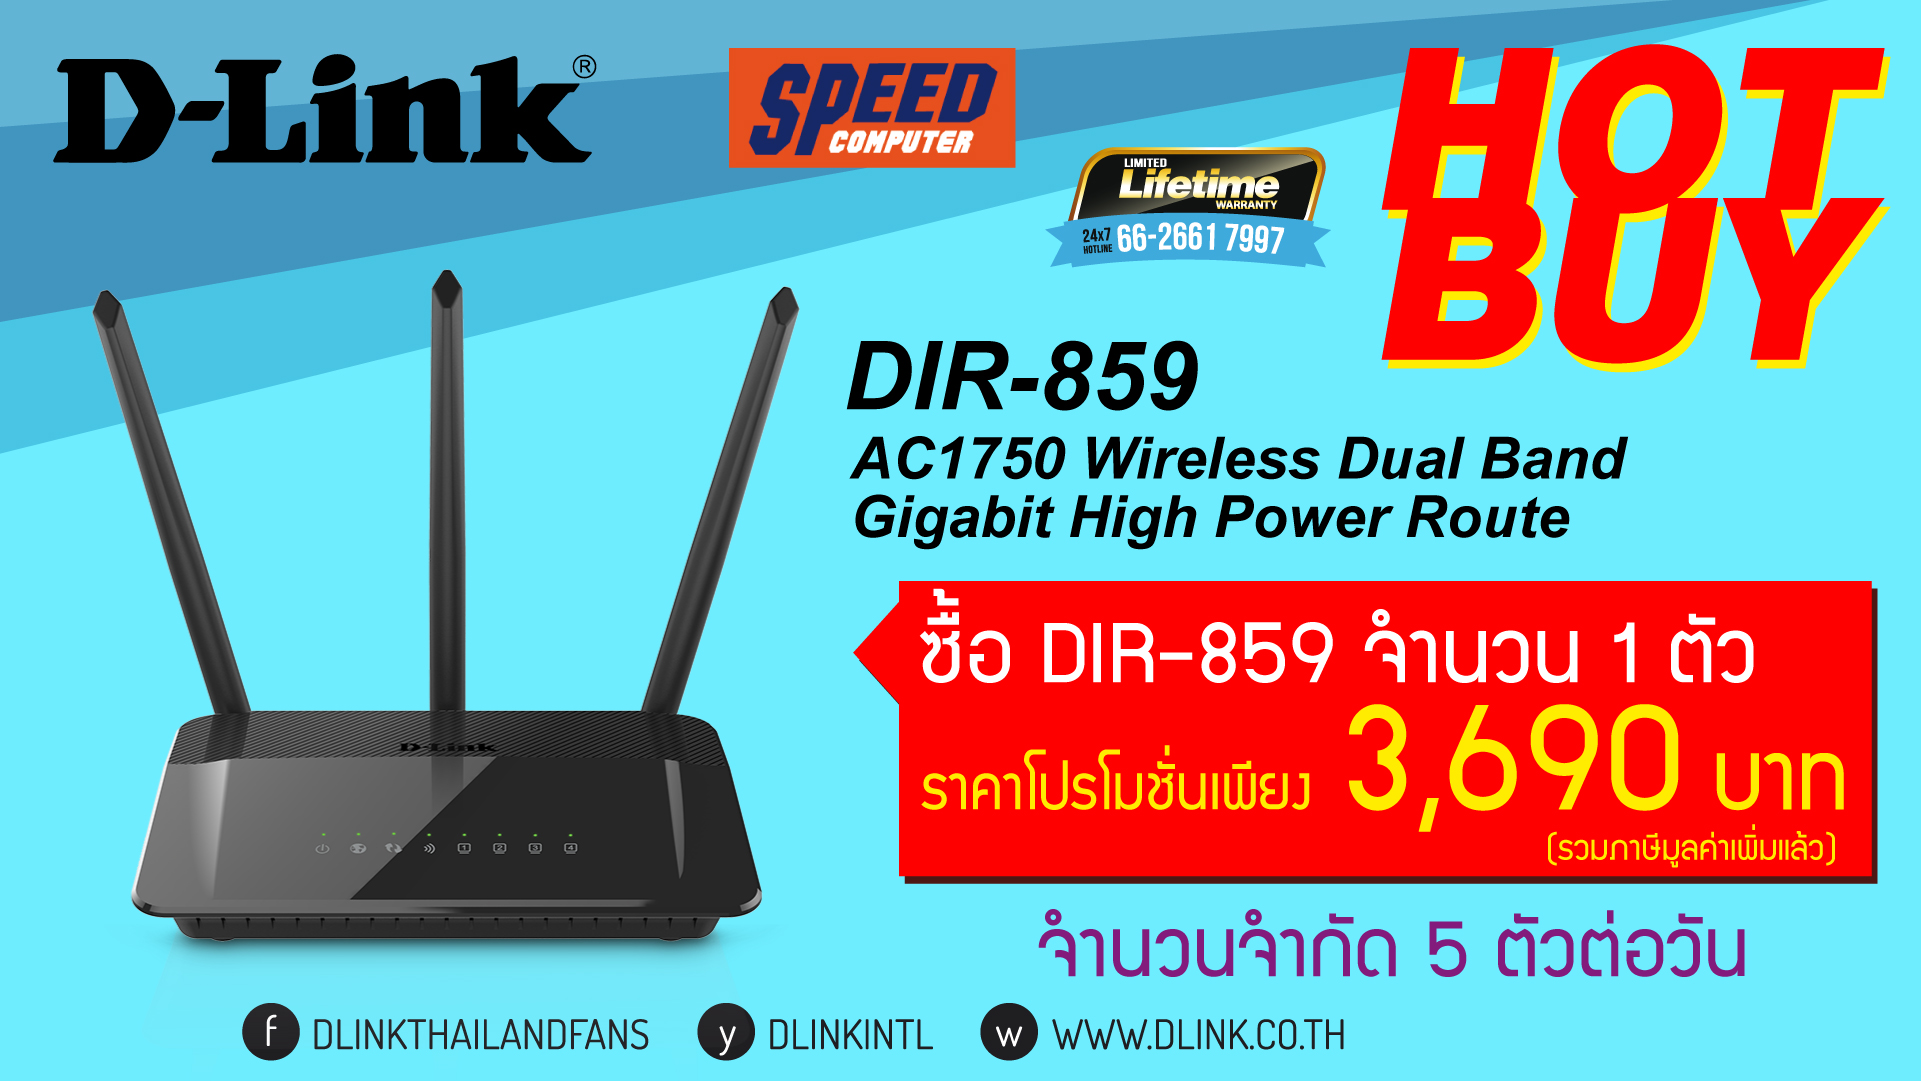 D-Link-Commart-Screen-for-Speed-March-16-12